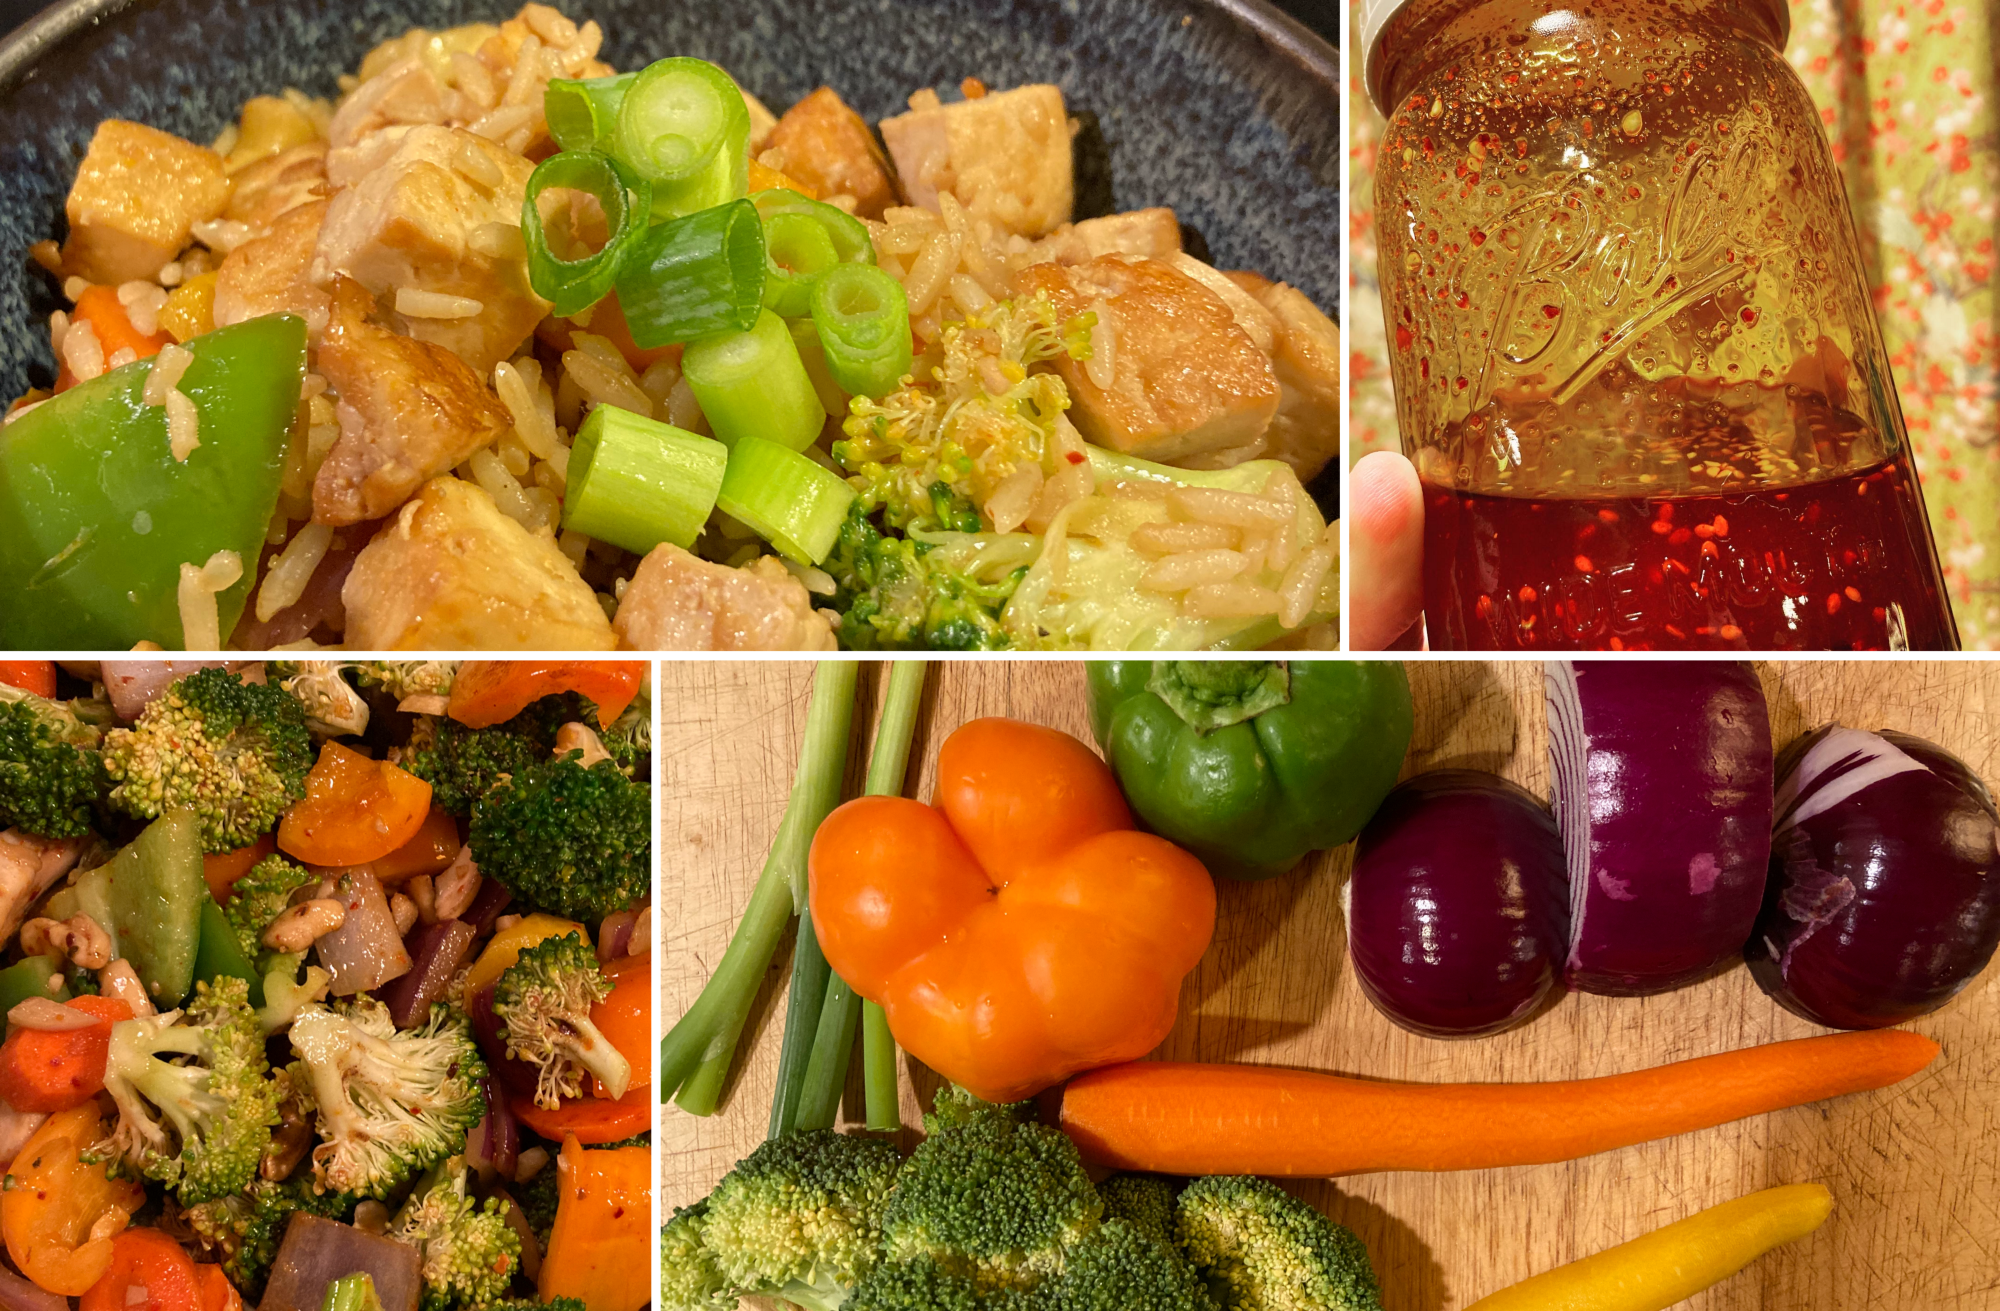 Collage: bowl of finished dish, chili oil being held up, shot of fried veggies/nuts, raw veggies on a cutting board